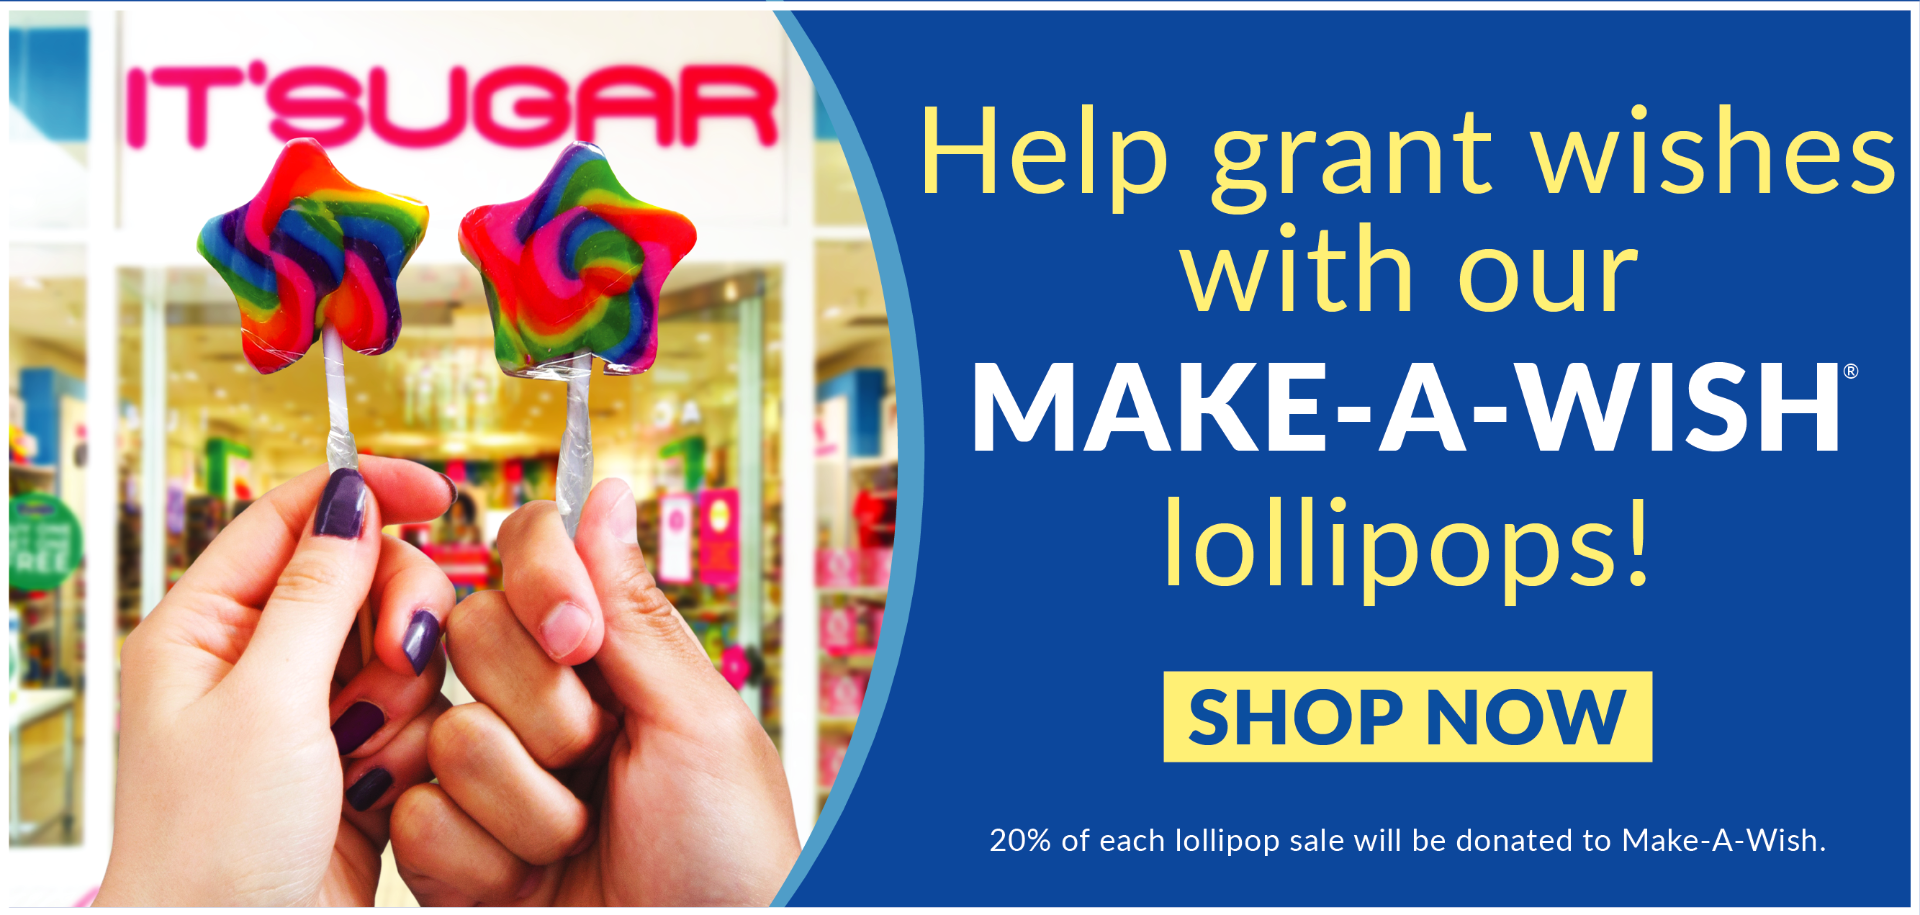 Help Grant Wishes with our Make-A-Wish lollipops from IT'SUGAR